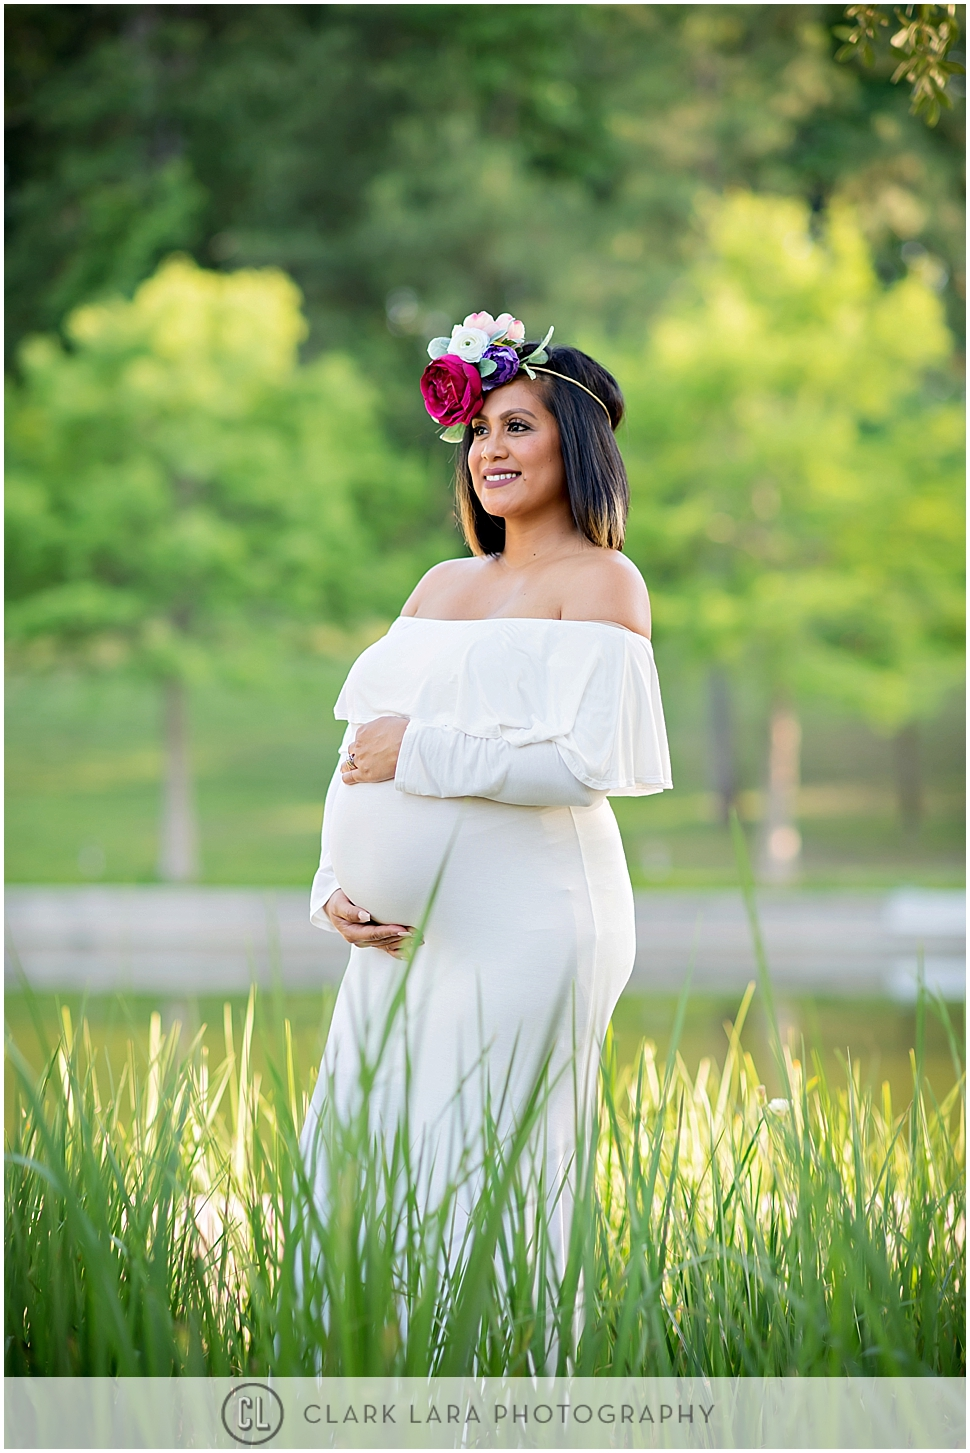 woodlands-family-maternity-photography-tua_0003.jpg